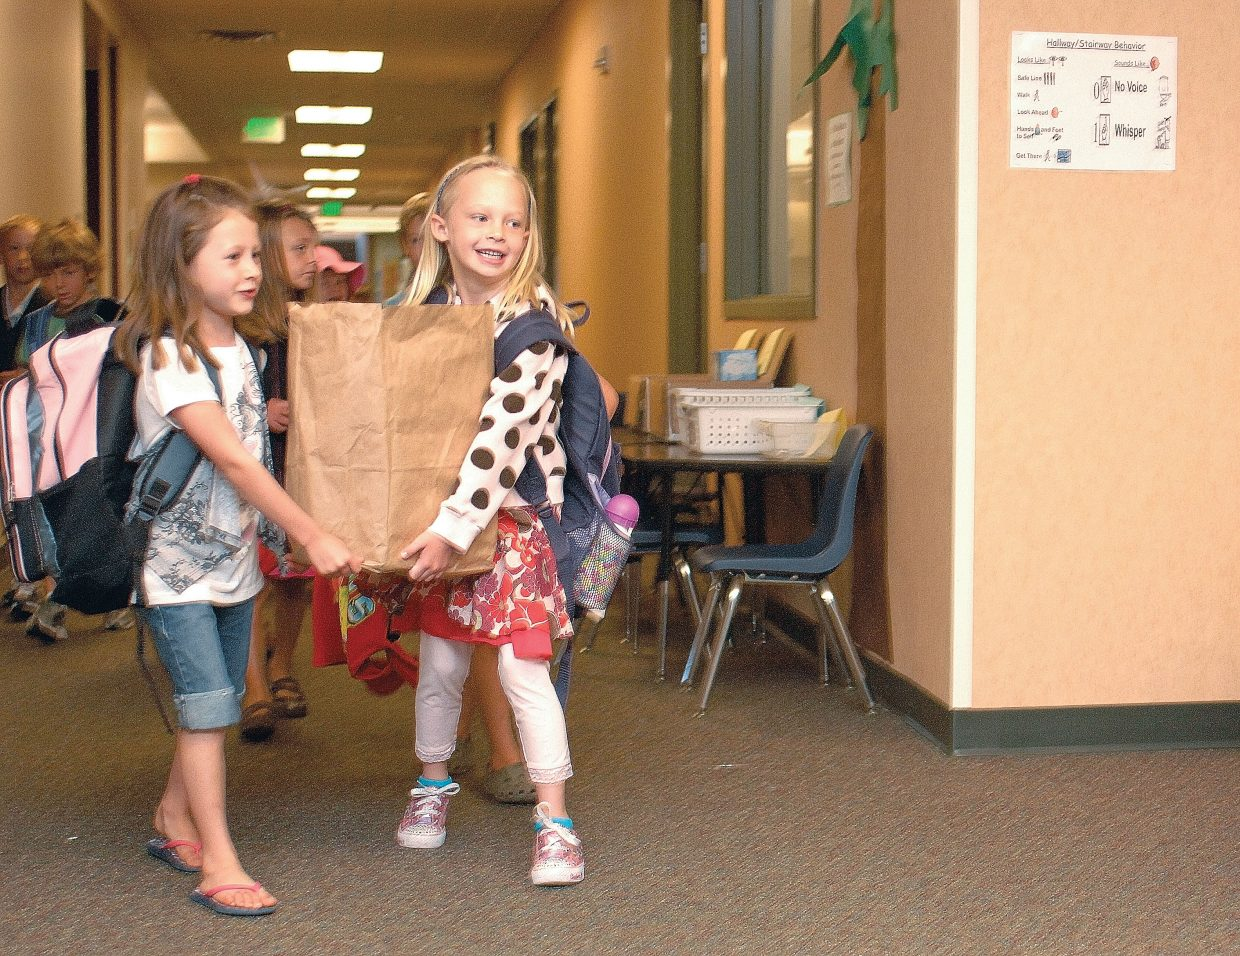 First grader Allie Van Ness, right, gets a helping hand from classmate Norah Pietras while carrying supplies to class on the first day of school Wednesday at Soda Creek Elementary.